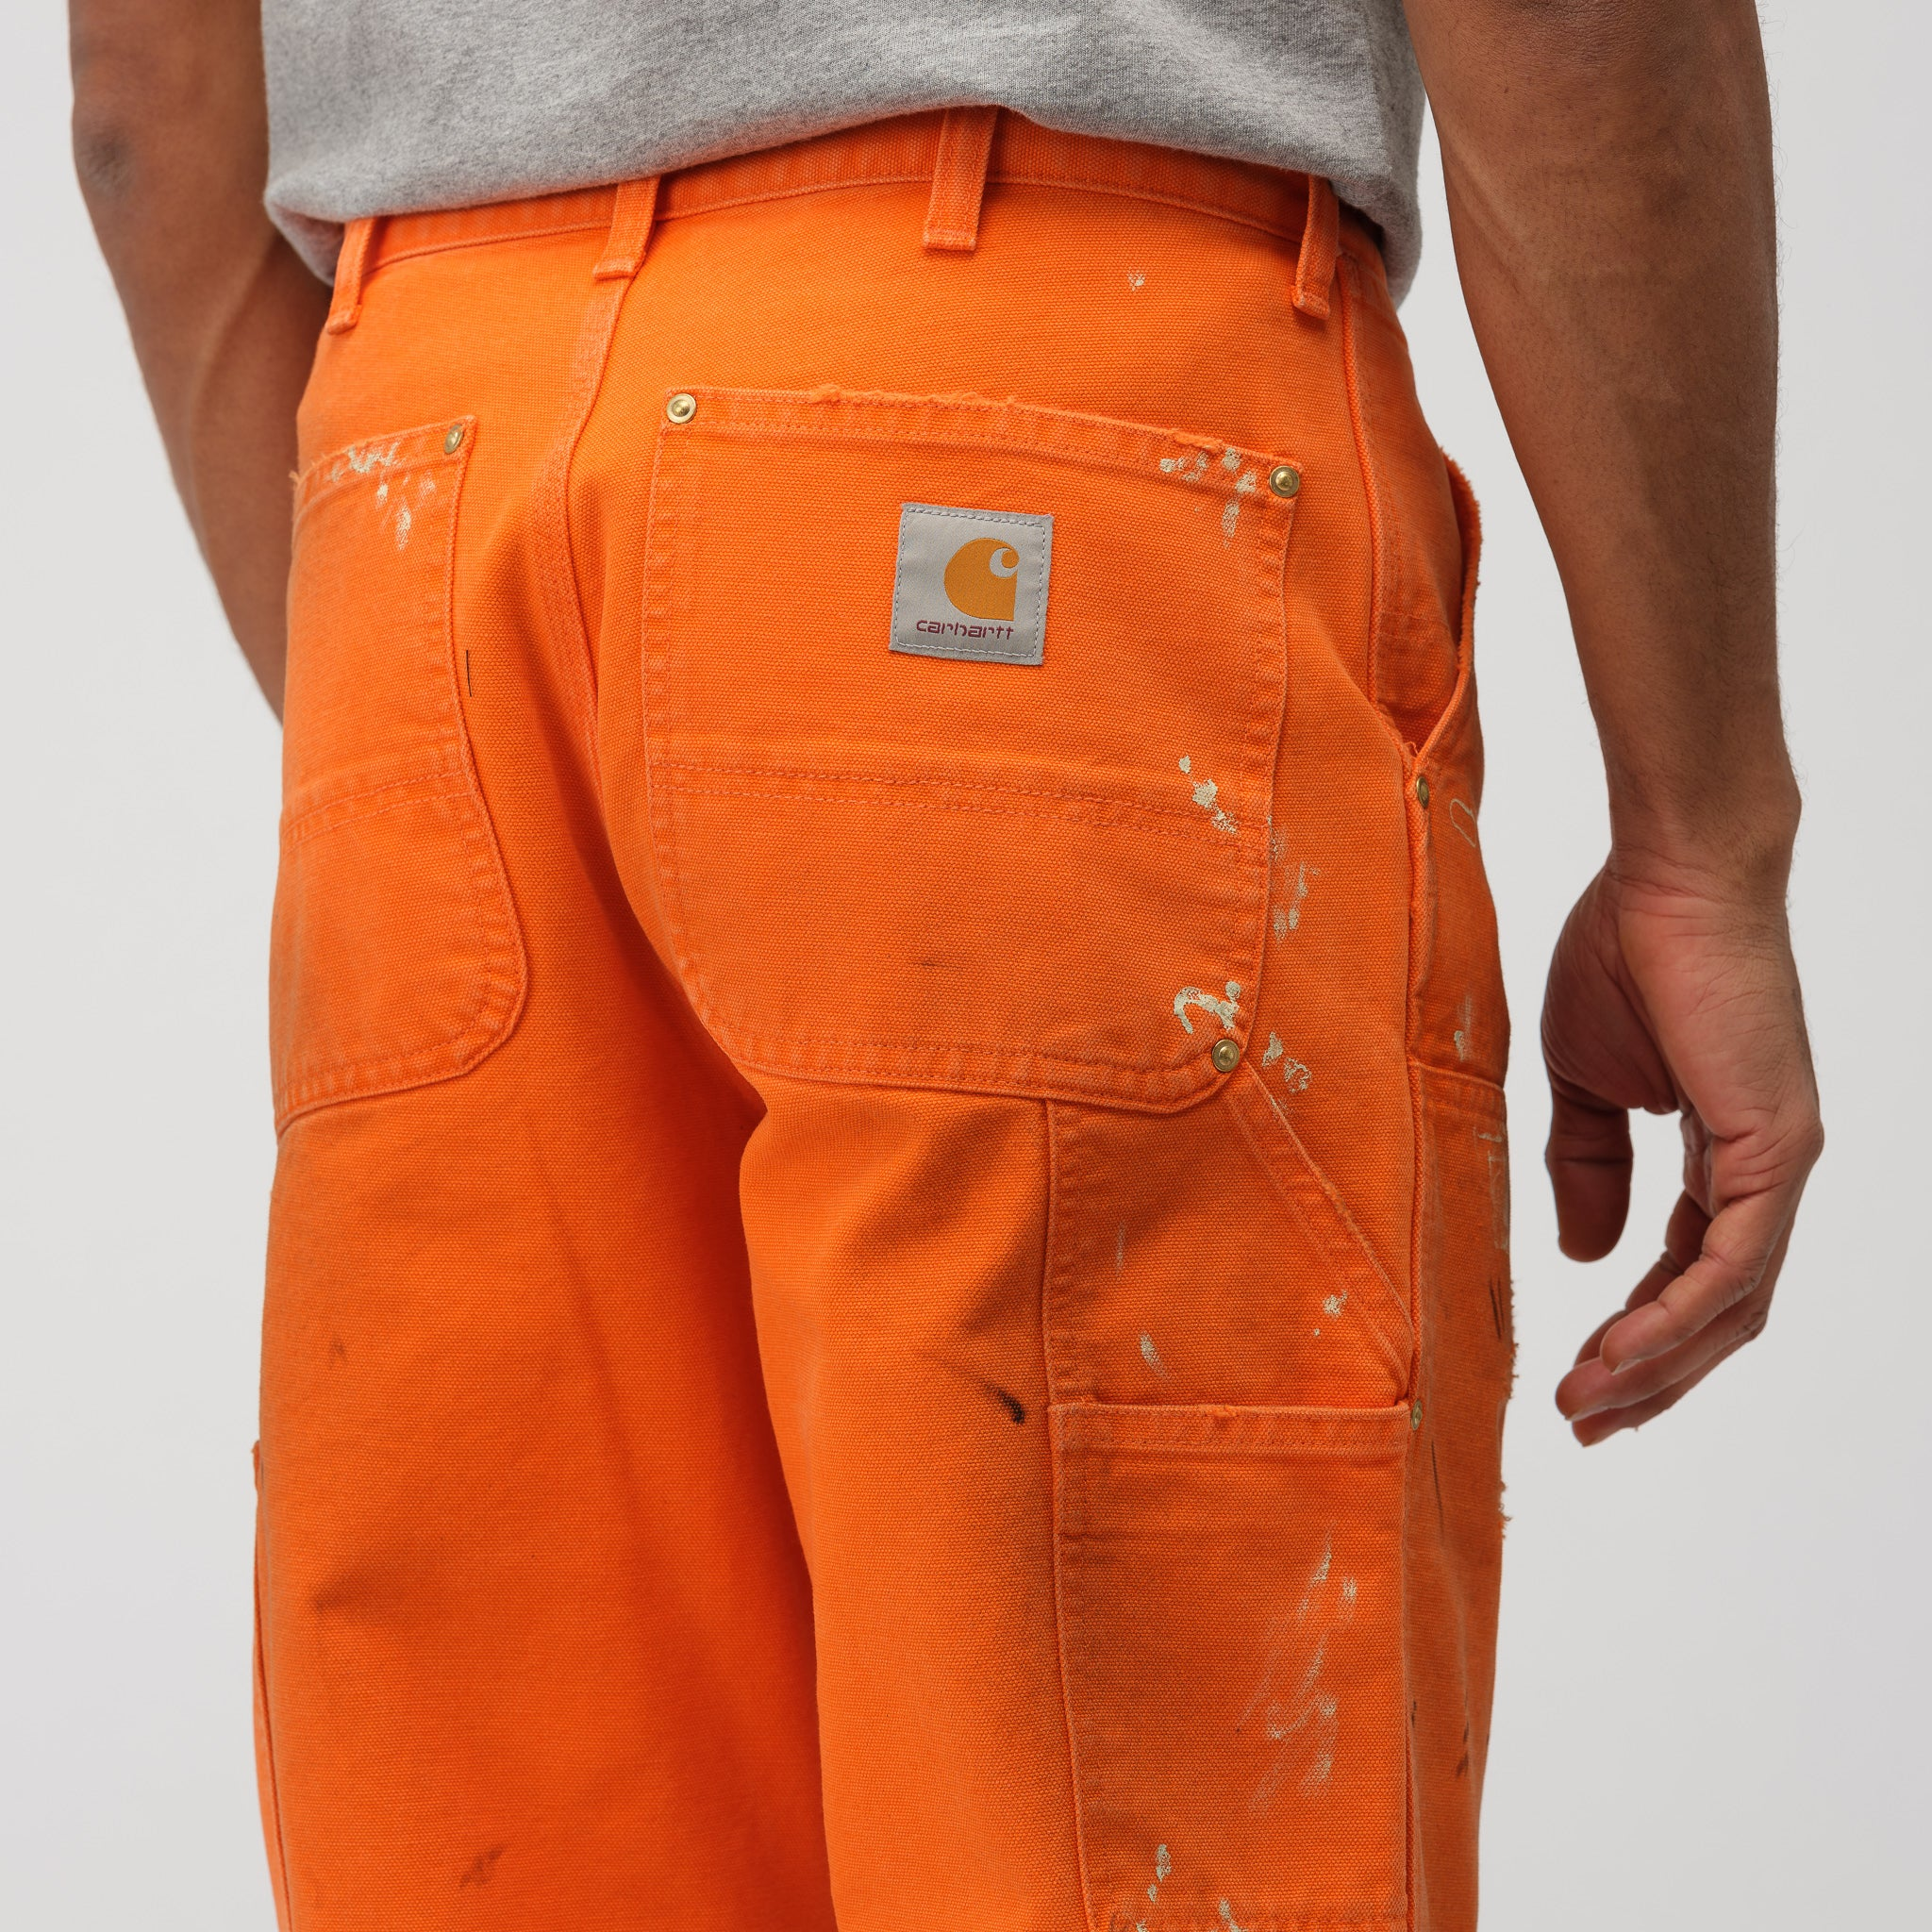 x Carhartt Pants in Orange Crystal